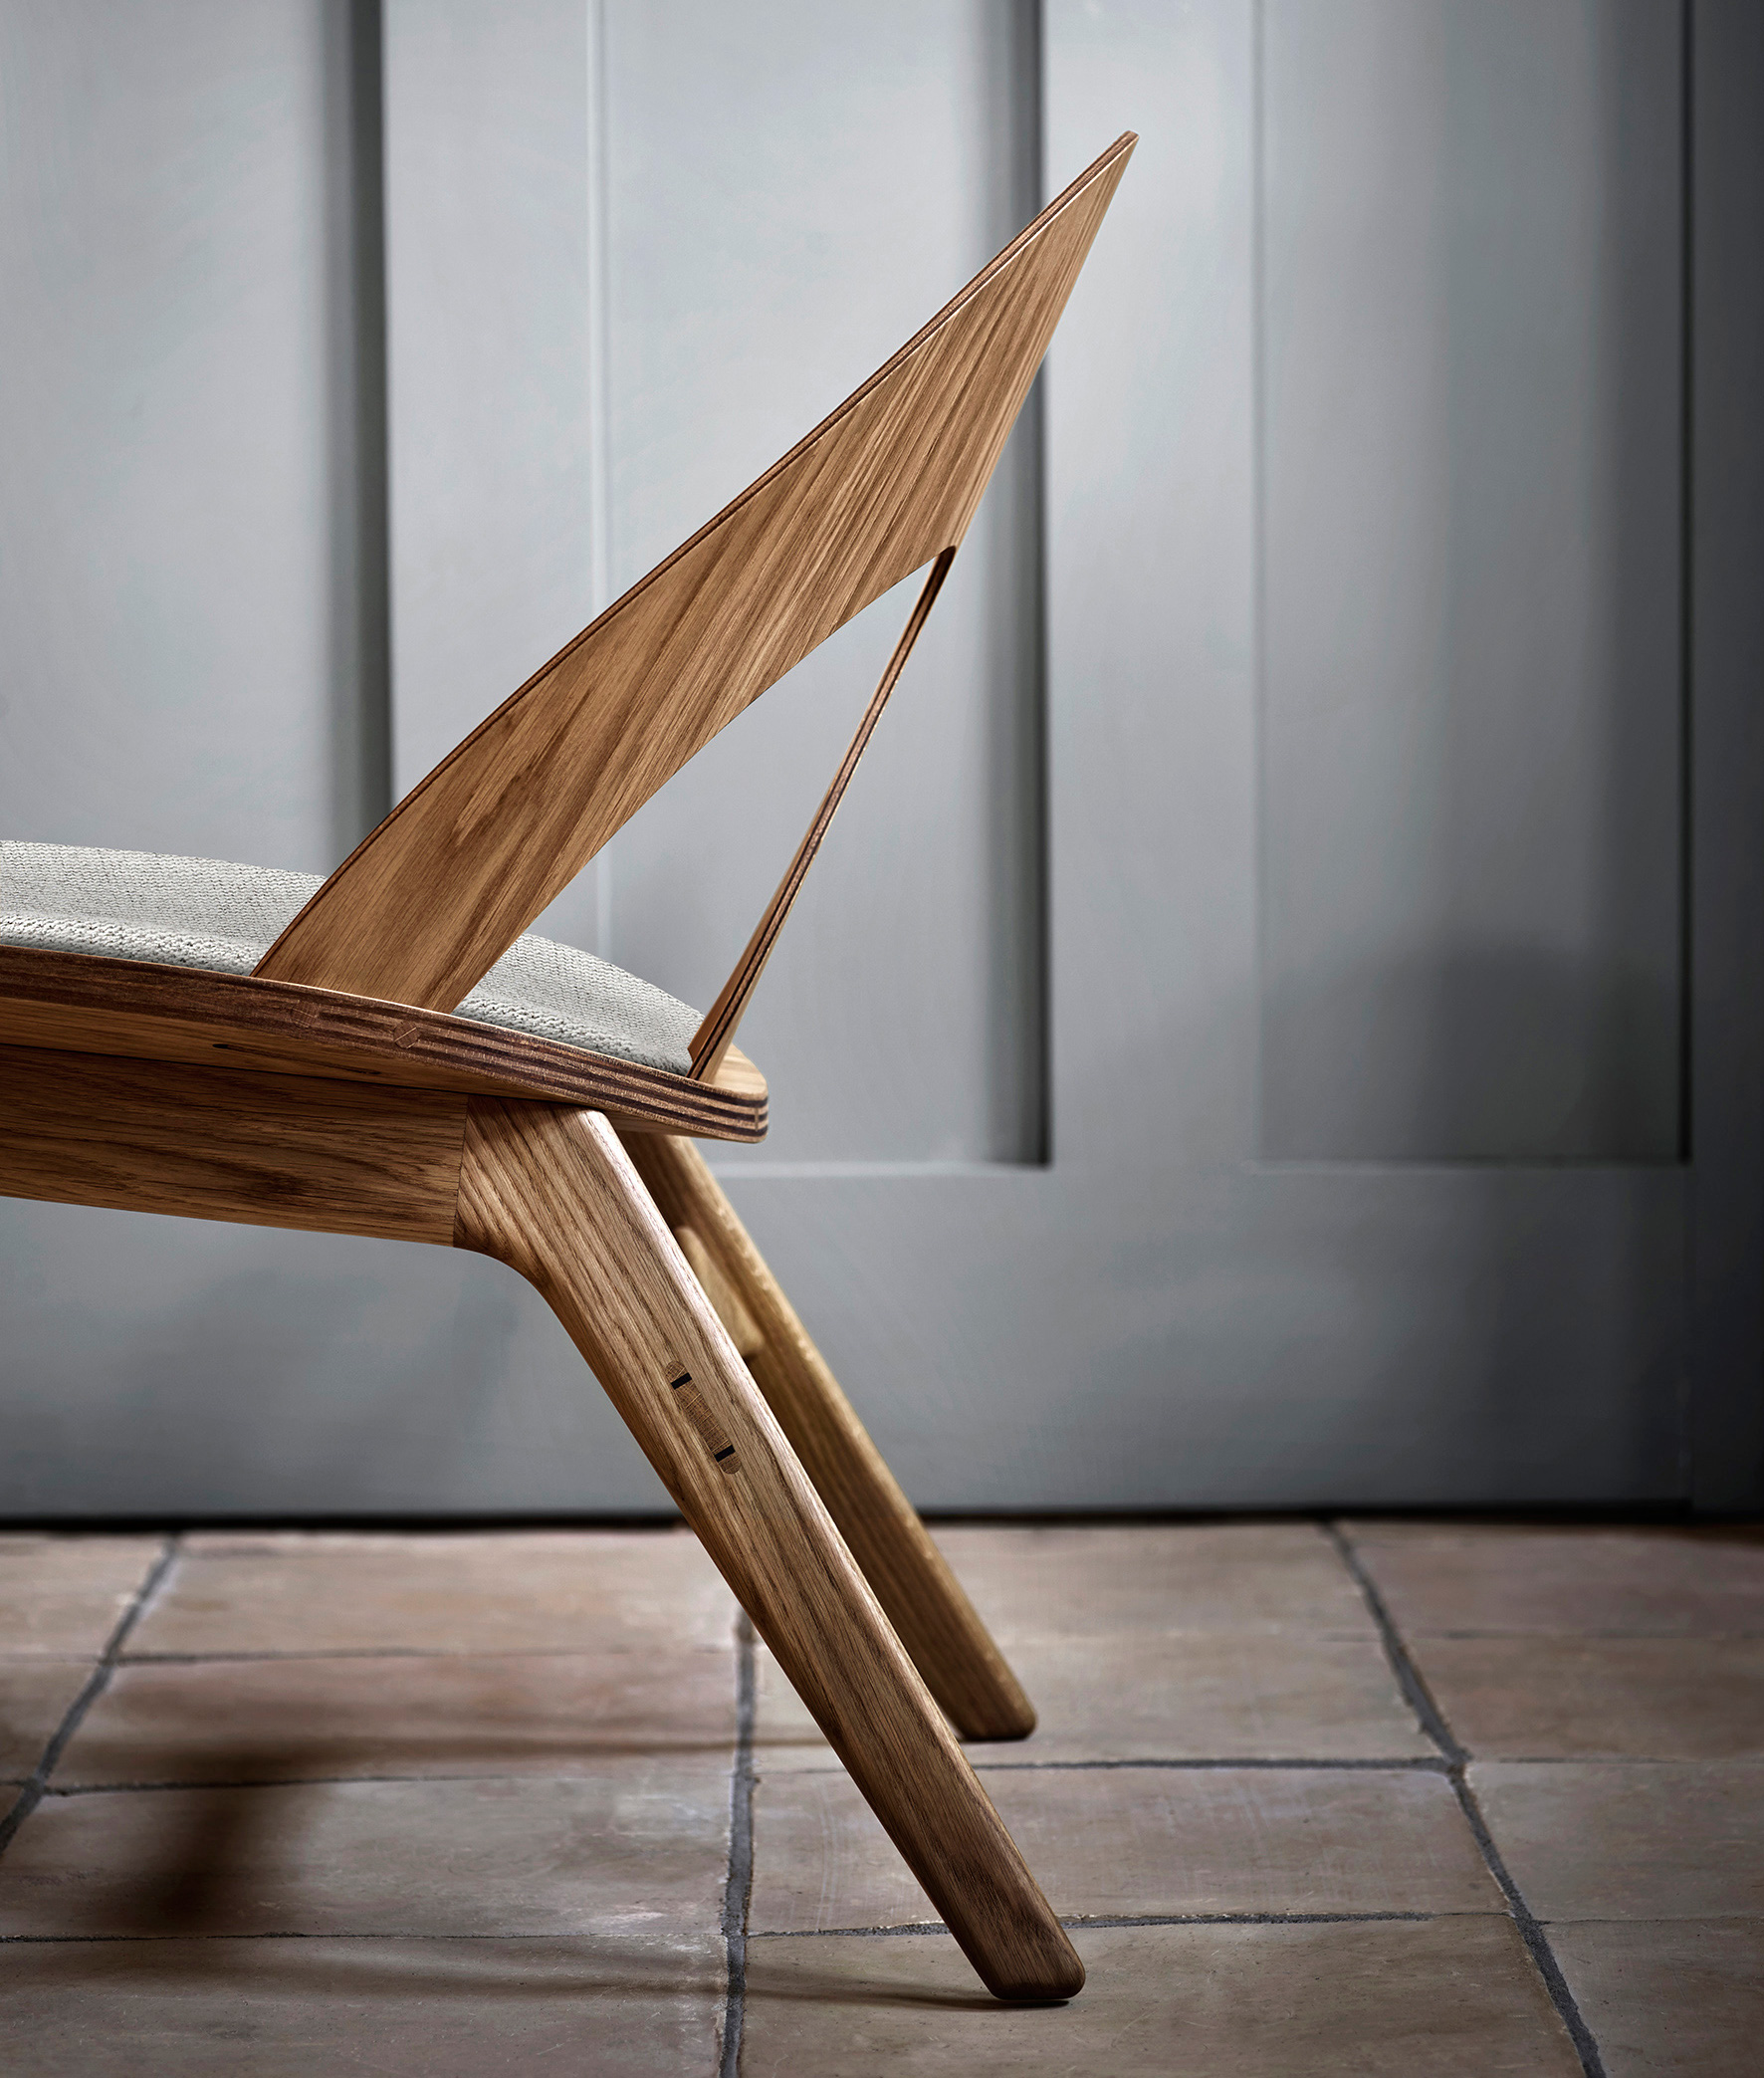 The Contour chair with a solid wooden frame | Contour chair by Børge Mogensen for Carl Hansen & Son | STIR